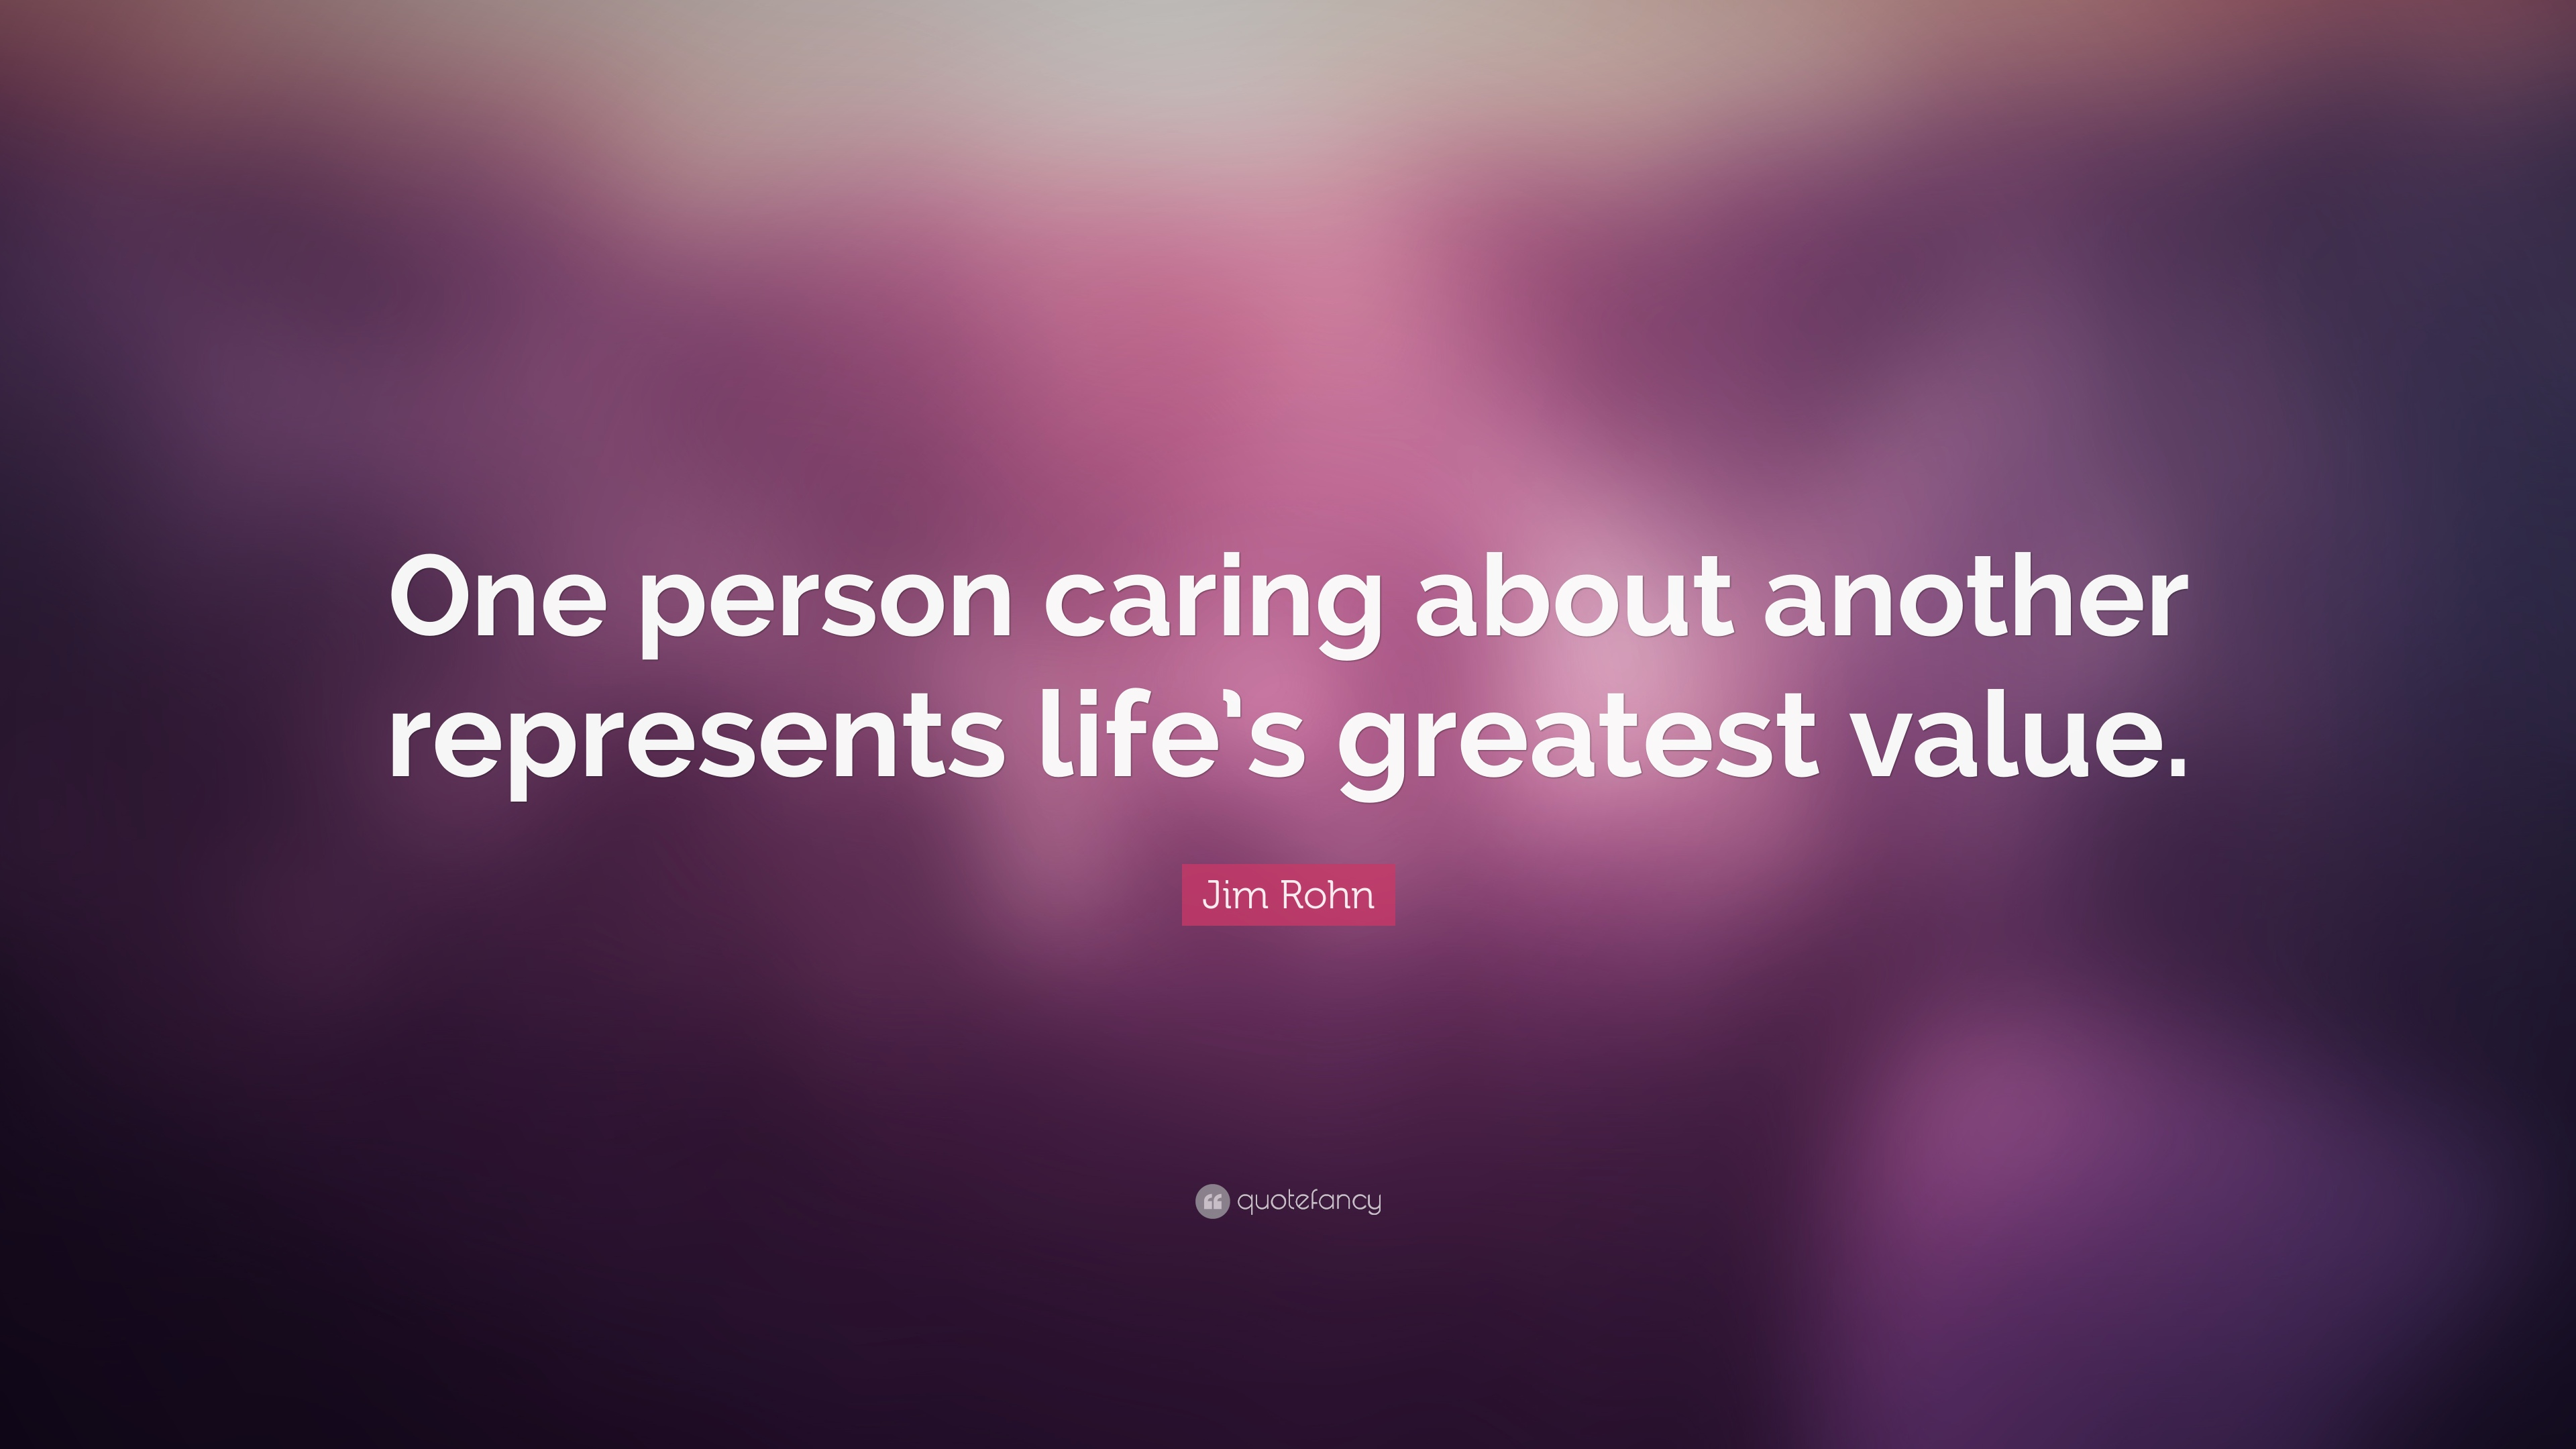 Quotes About Caring Httpsquotefancymediawallpaper3840X21609.